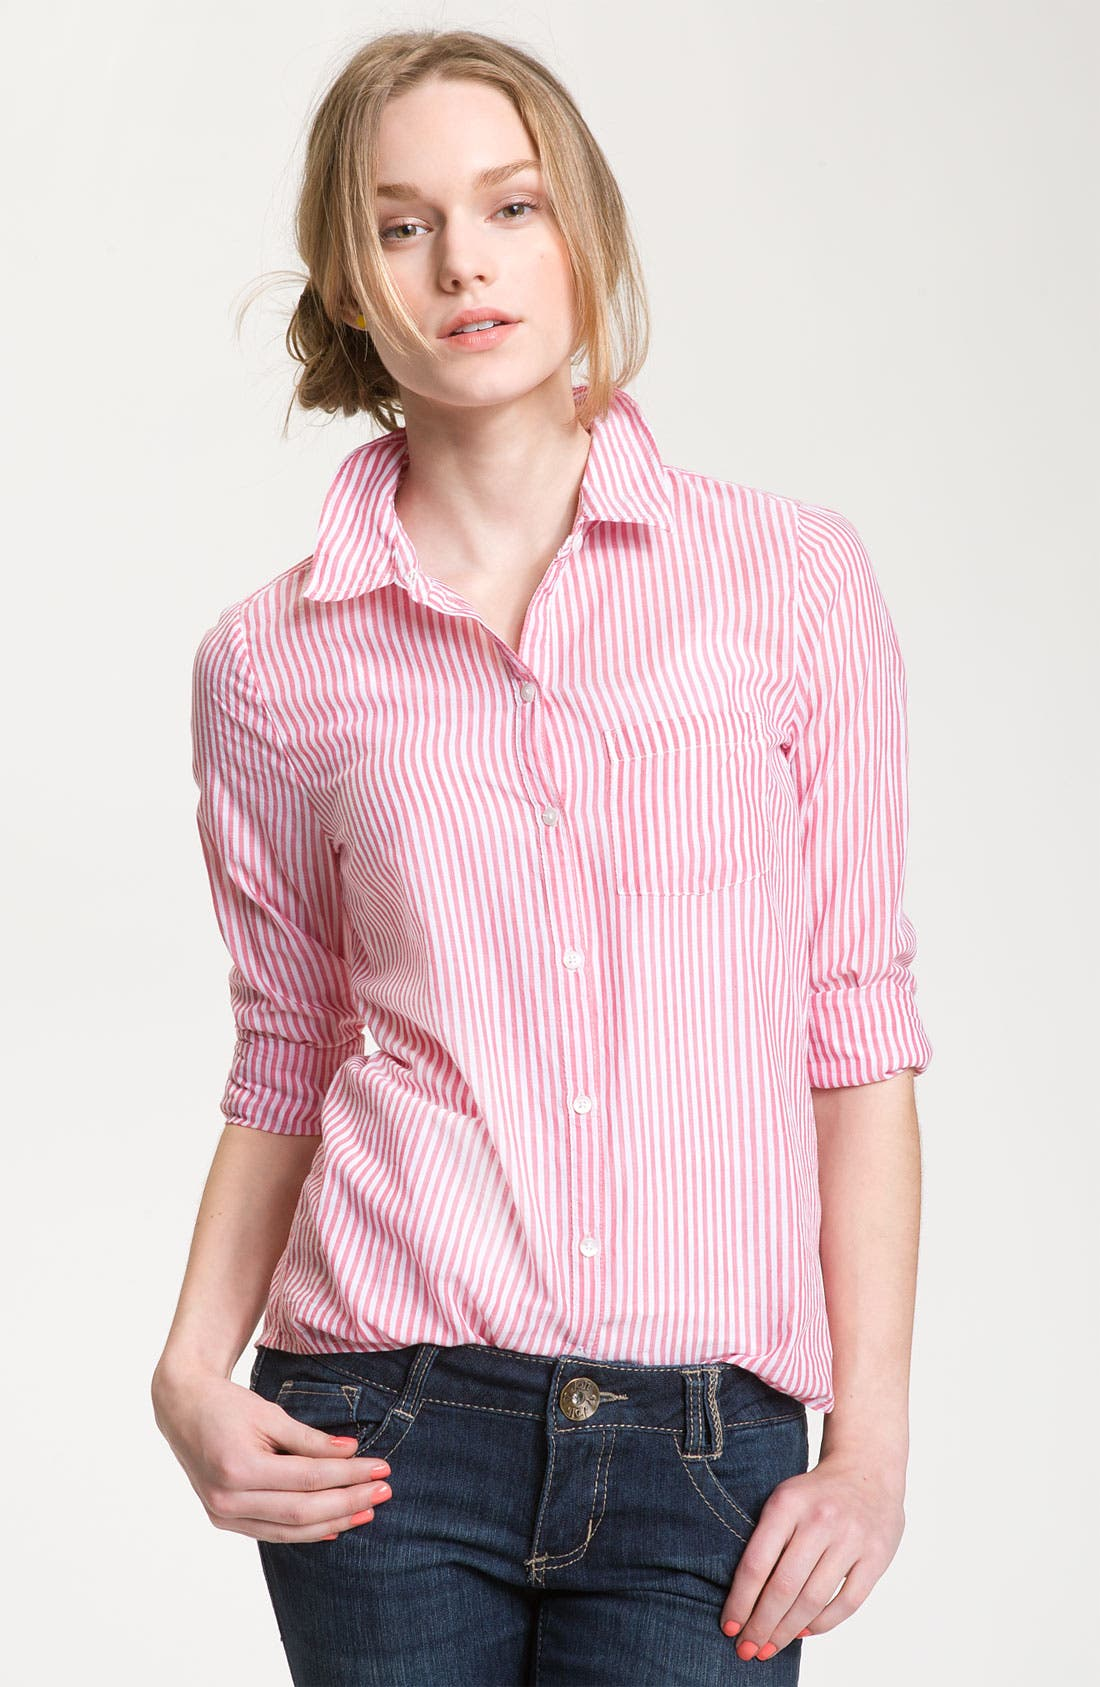 Alternate Image 1 Selected - BP. 'Preppy' Cotton Shirt (Juniors)